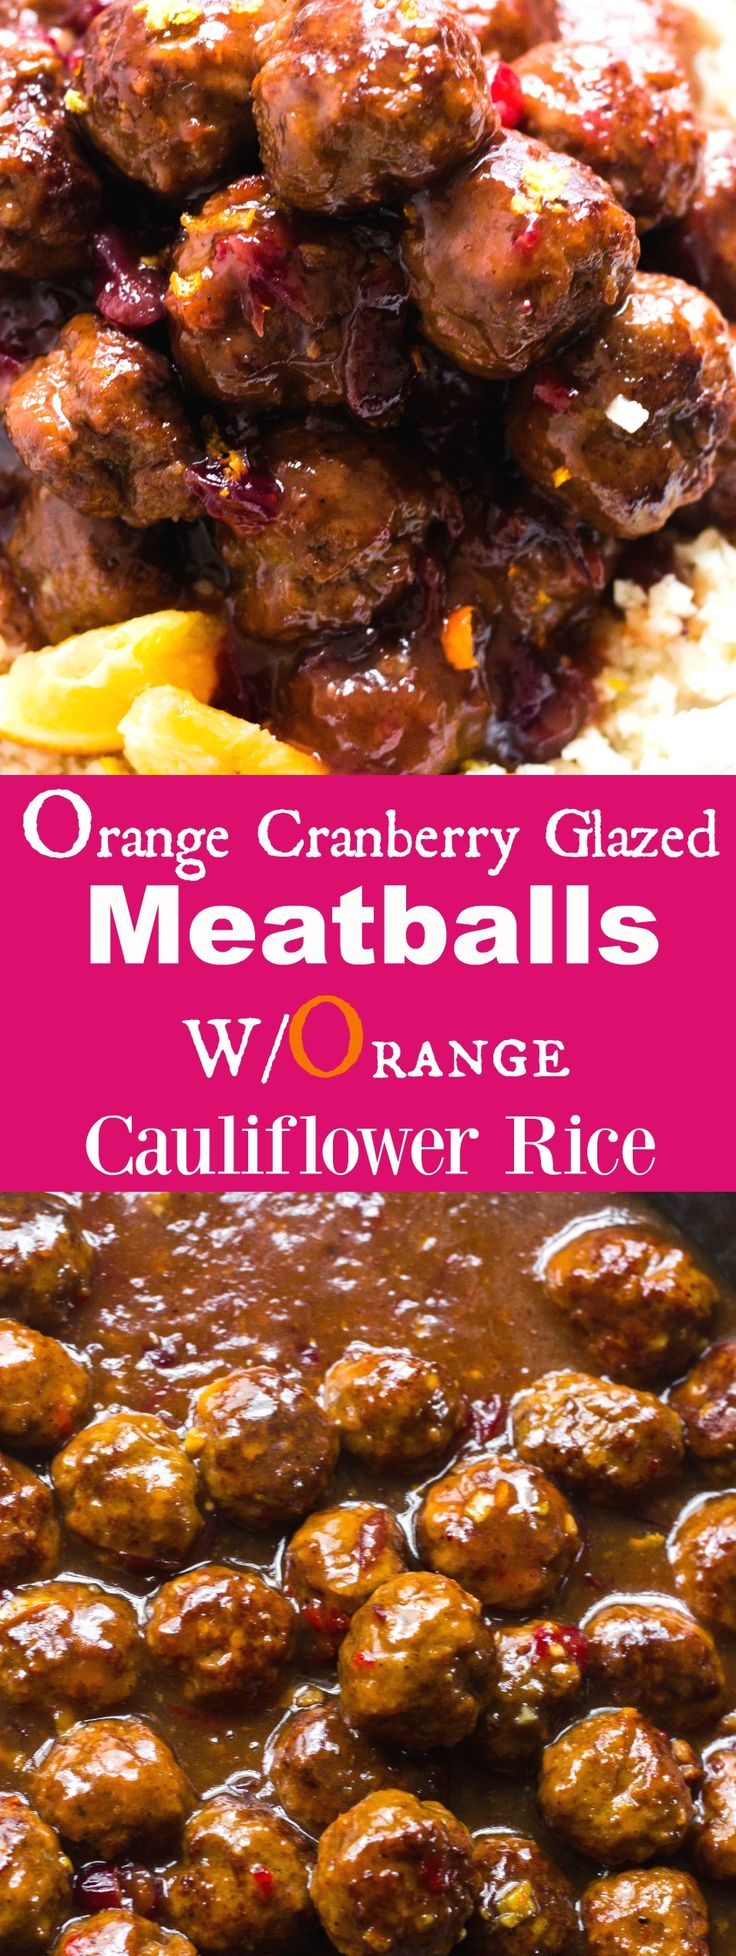 Juicy, sweet, moist and tangy orange cranberry meatballs are simmered in an Asian flavored orange juice sauce. Pure deliciousness! Serve with orange cauliflower rice. #merrymeals  #collectivebias #ad